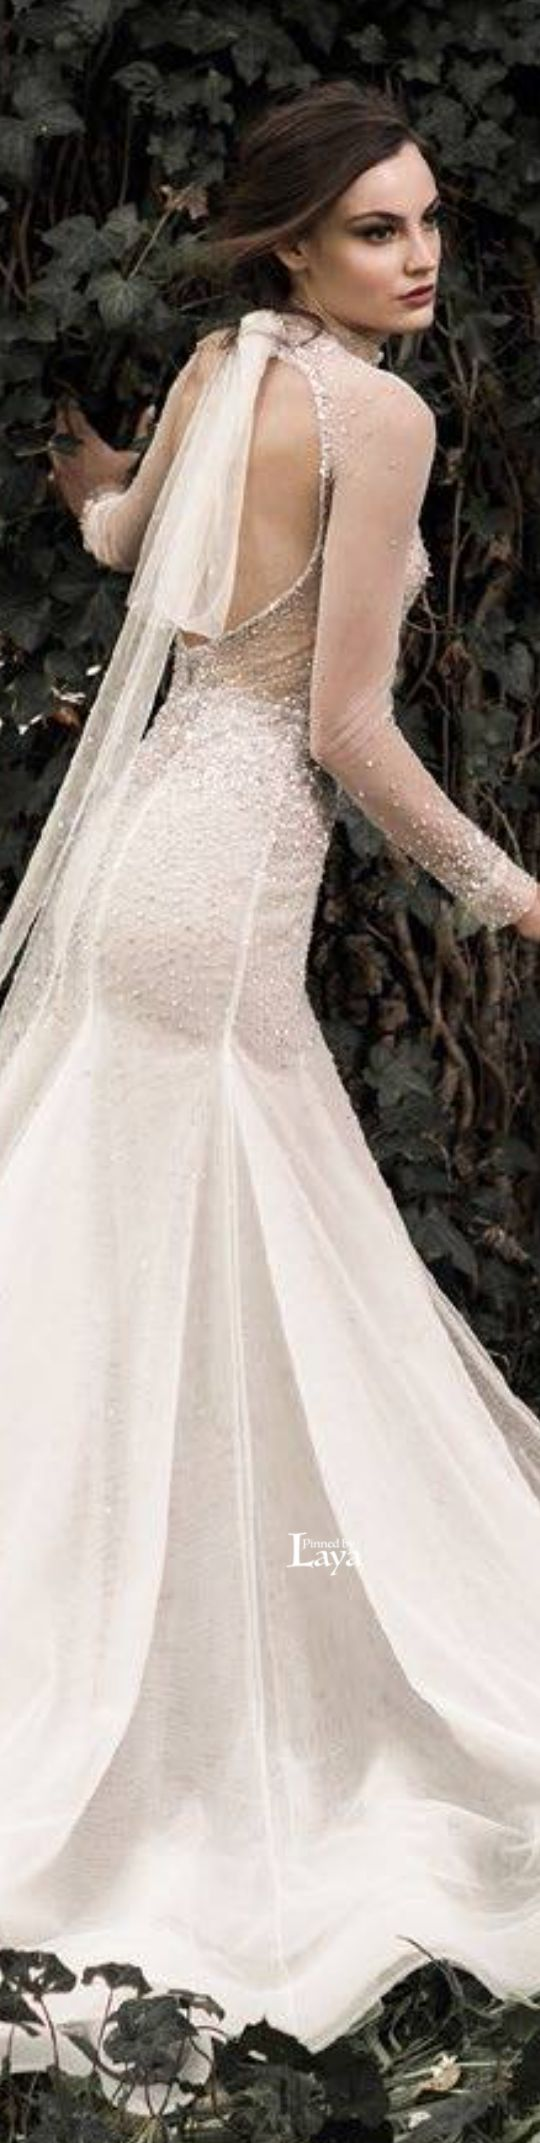 Edgy wedding dresses  Paolo Sebastian  COUTURE  White dress  Pinterest  Paolo